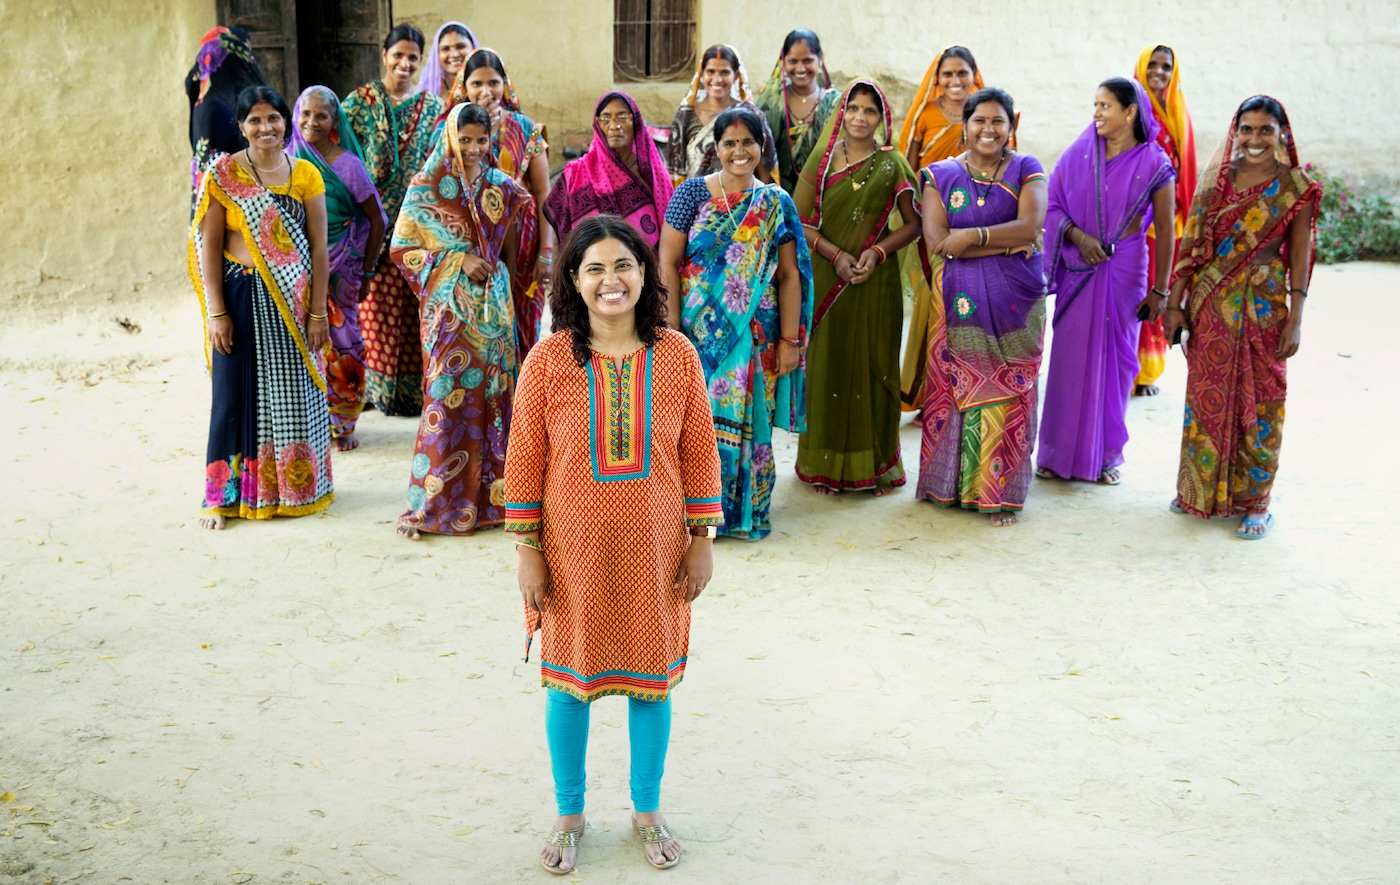 A group of about fifteen women in colorful, full-length dresses standing in an unpaved city street, all smiling.